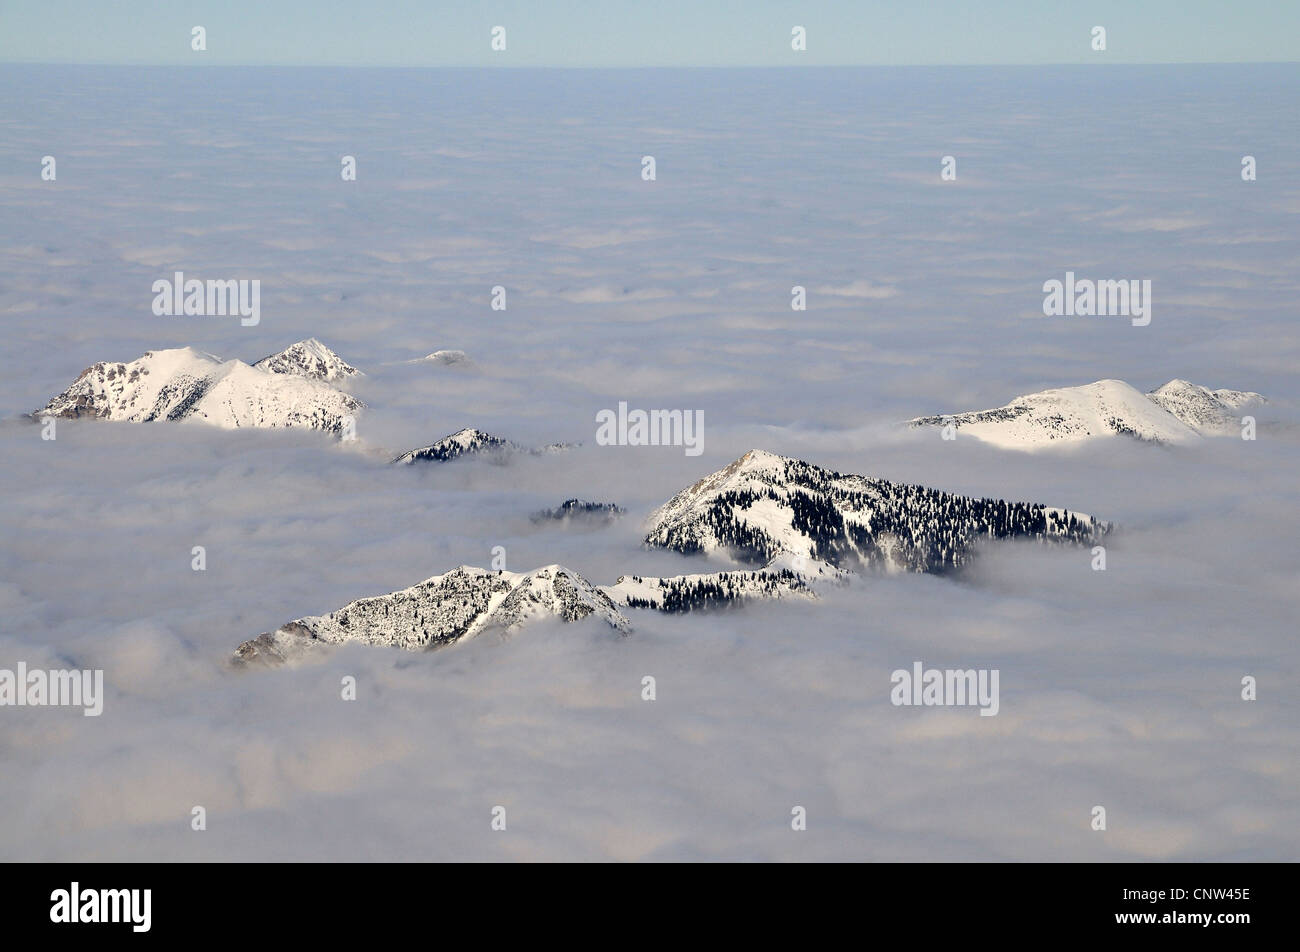 Allgaeu alps protruding out of clouds, Germany, Bavaria - Stock Image